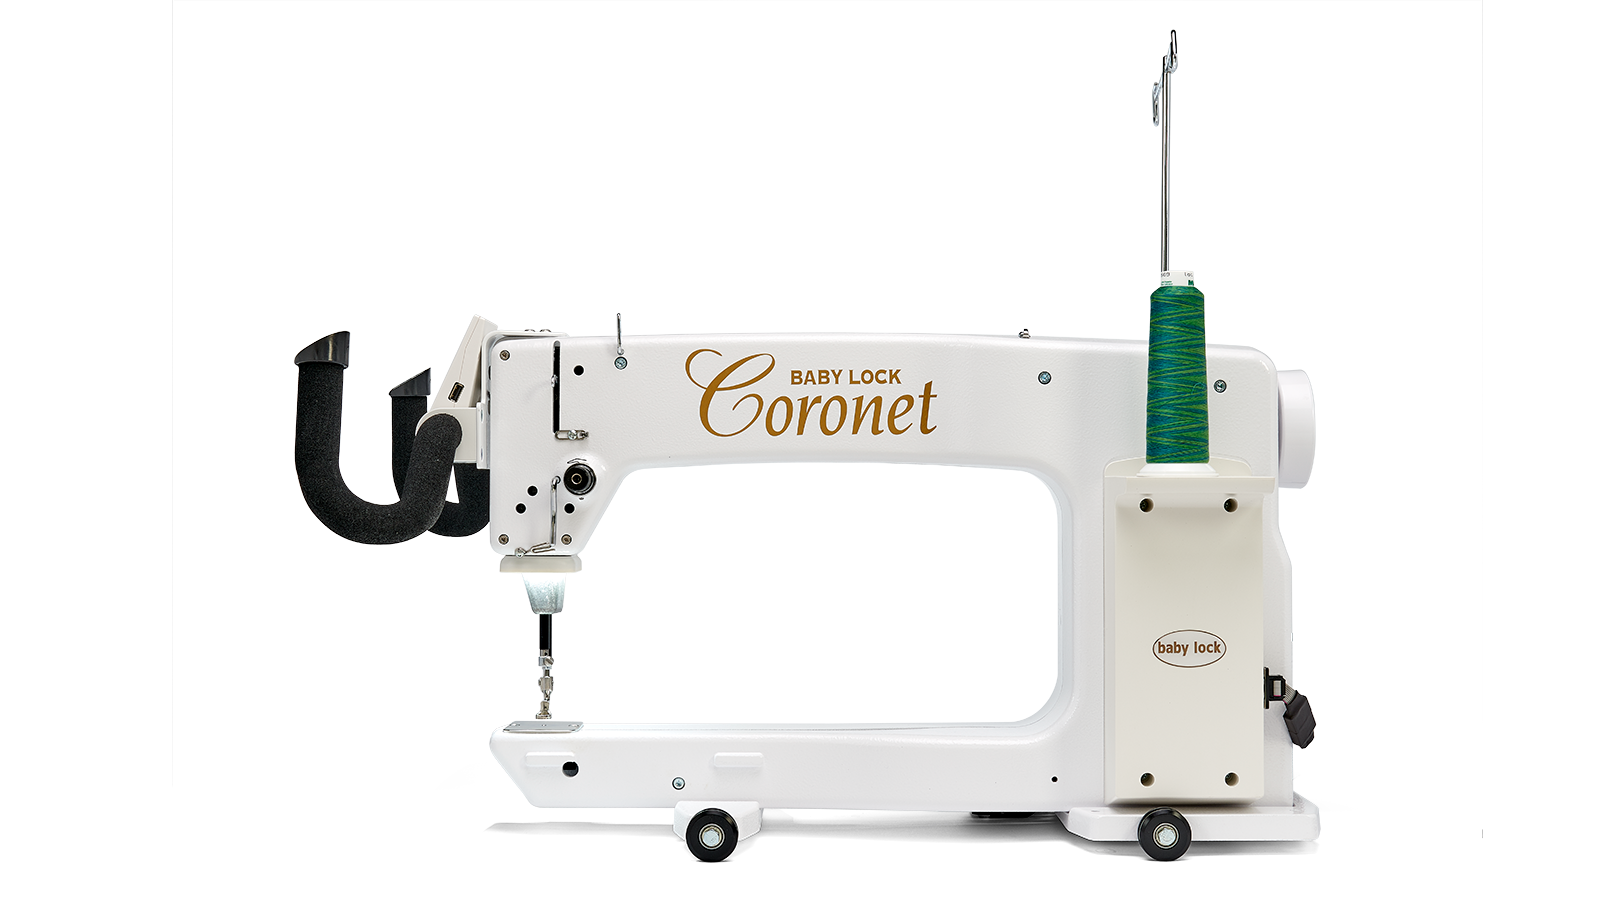 Coronet Long Arm with 5 ft frame